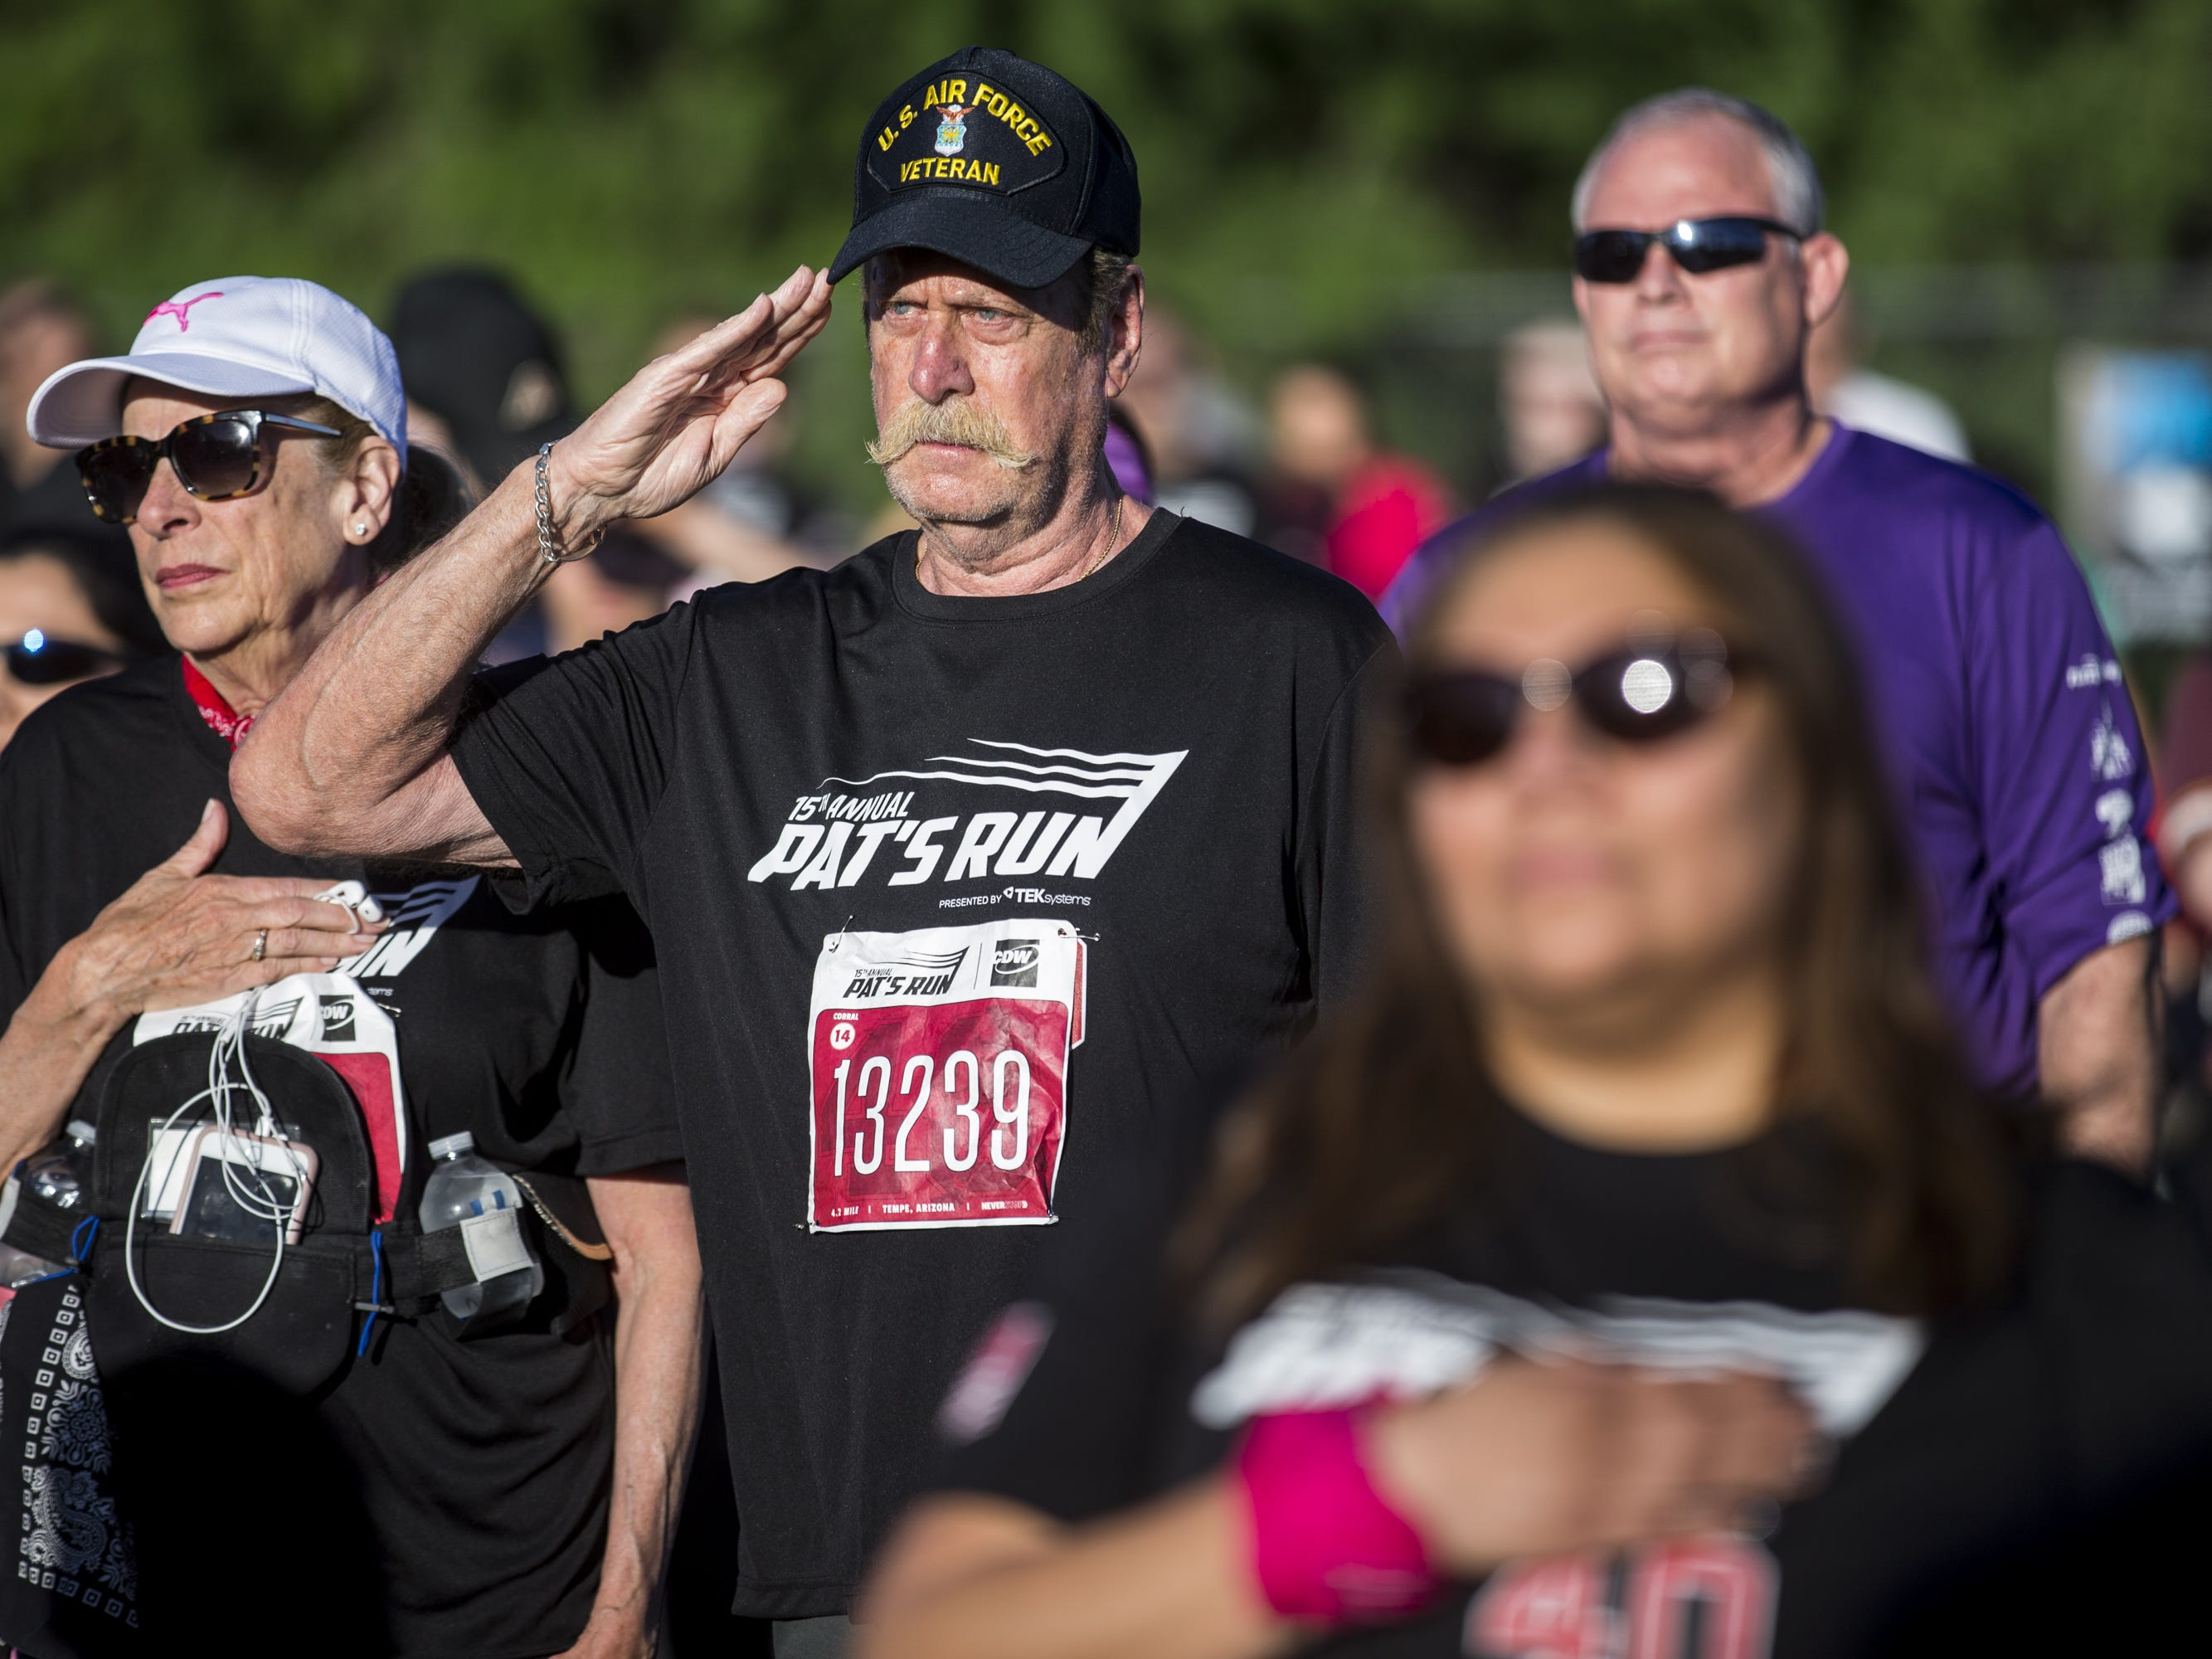 Participants stand during the national anthem before the 15th Annual Pat's Run on Saturday, April 27, 2019, in Tempe, Ariz.